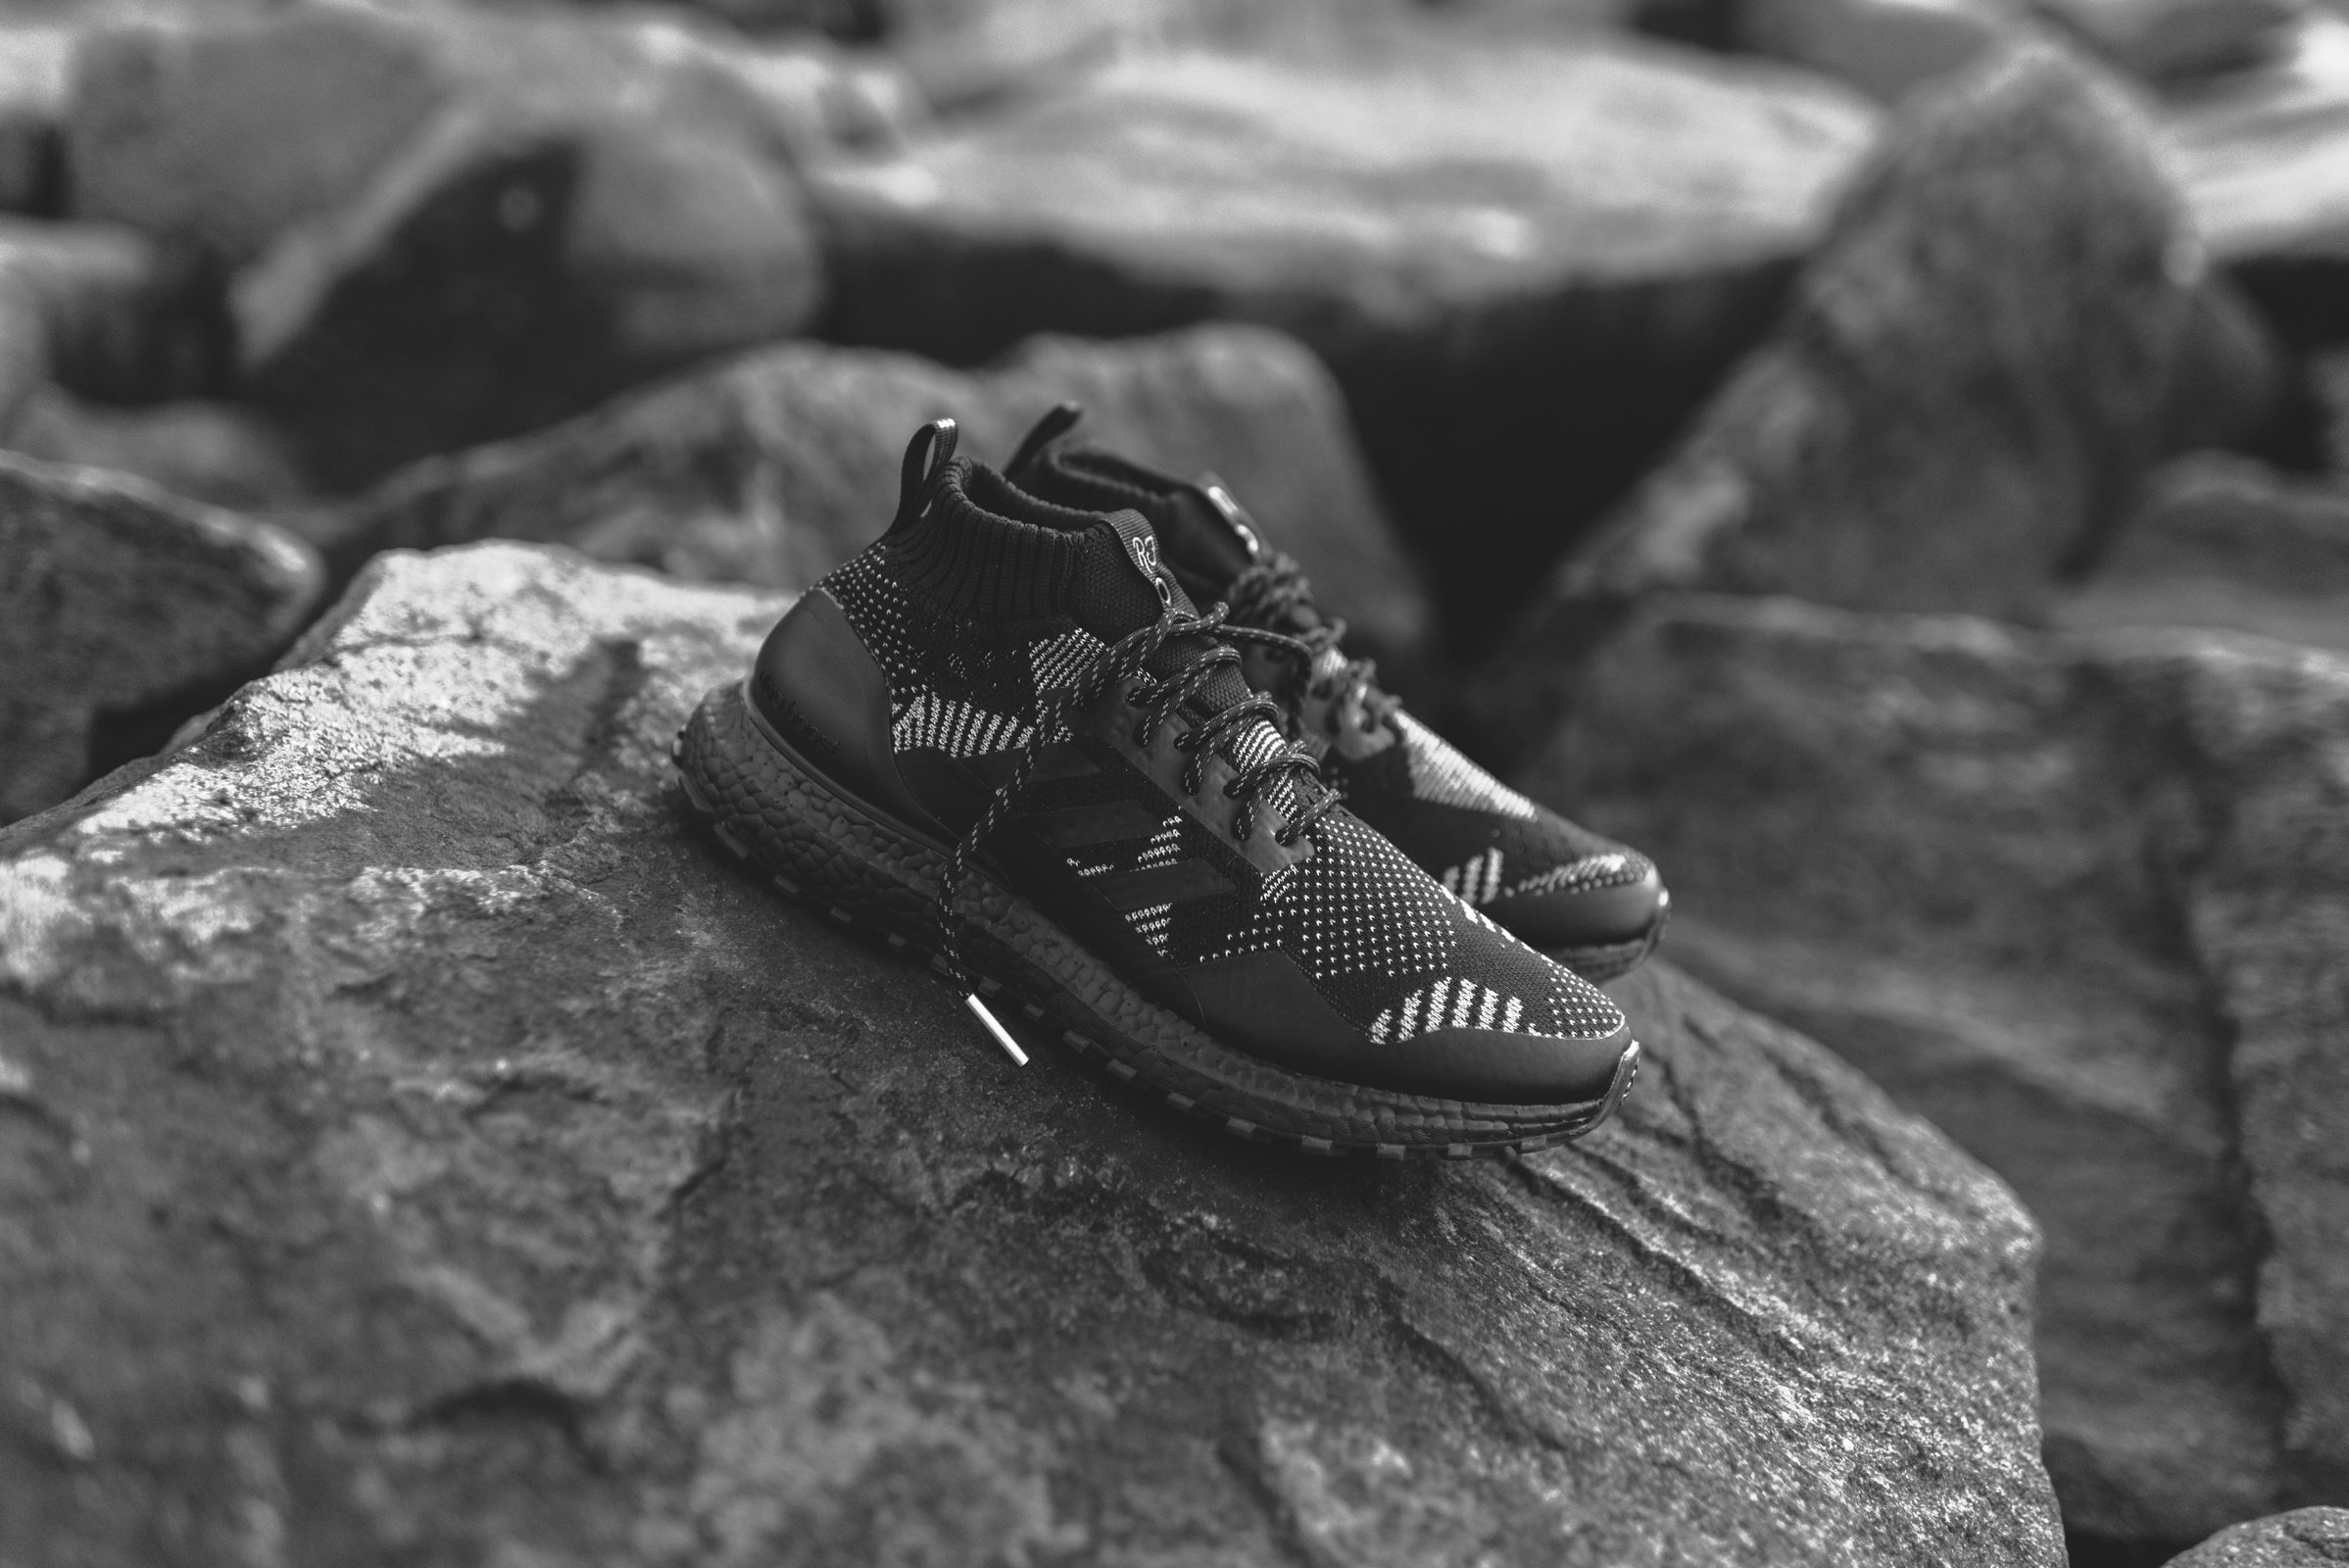 436a62d0 2_a2276302-a00b-439f-81a5-bff659b9b5d6.jpg. This release marks the second  iteration of the UltraBOOST Mid Kith ...